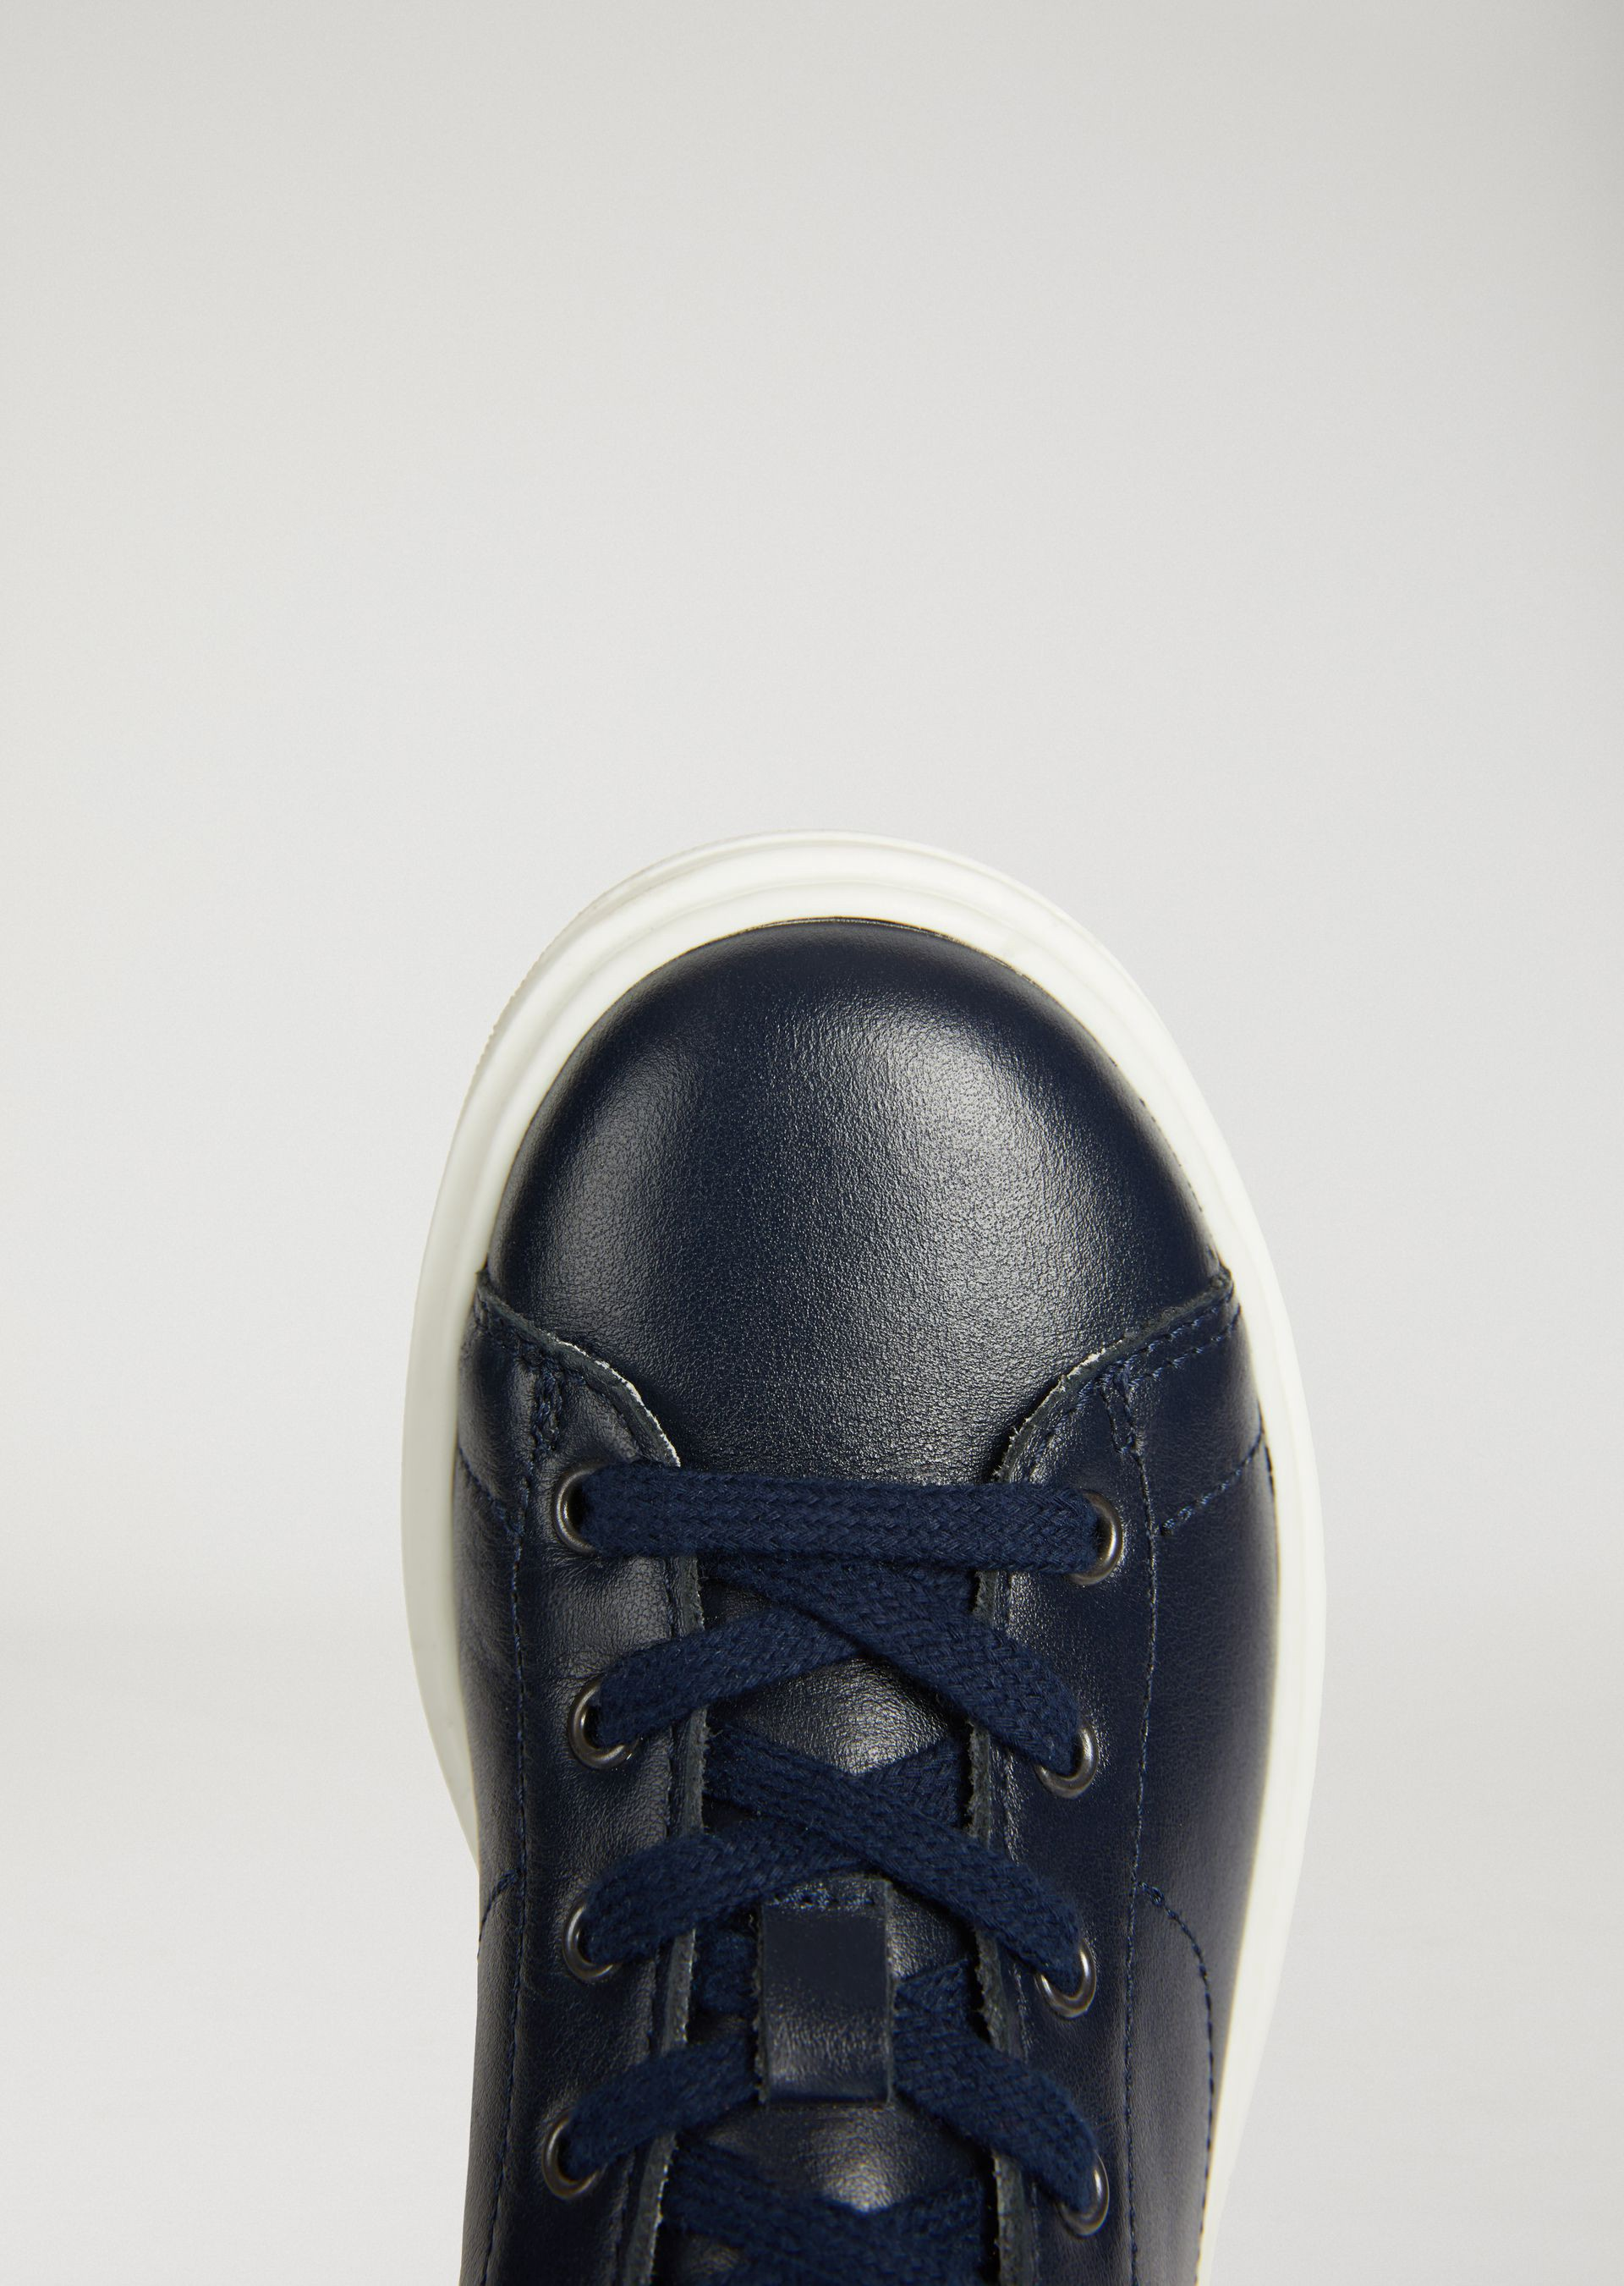 cc93ccacb Emporio Armani Sneakers - Navy Blue 31 | Products in 2018 ...